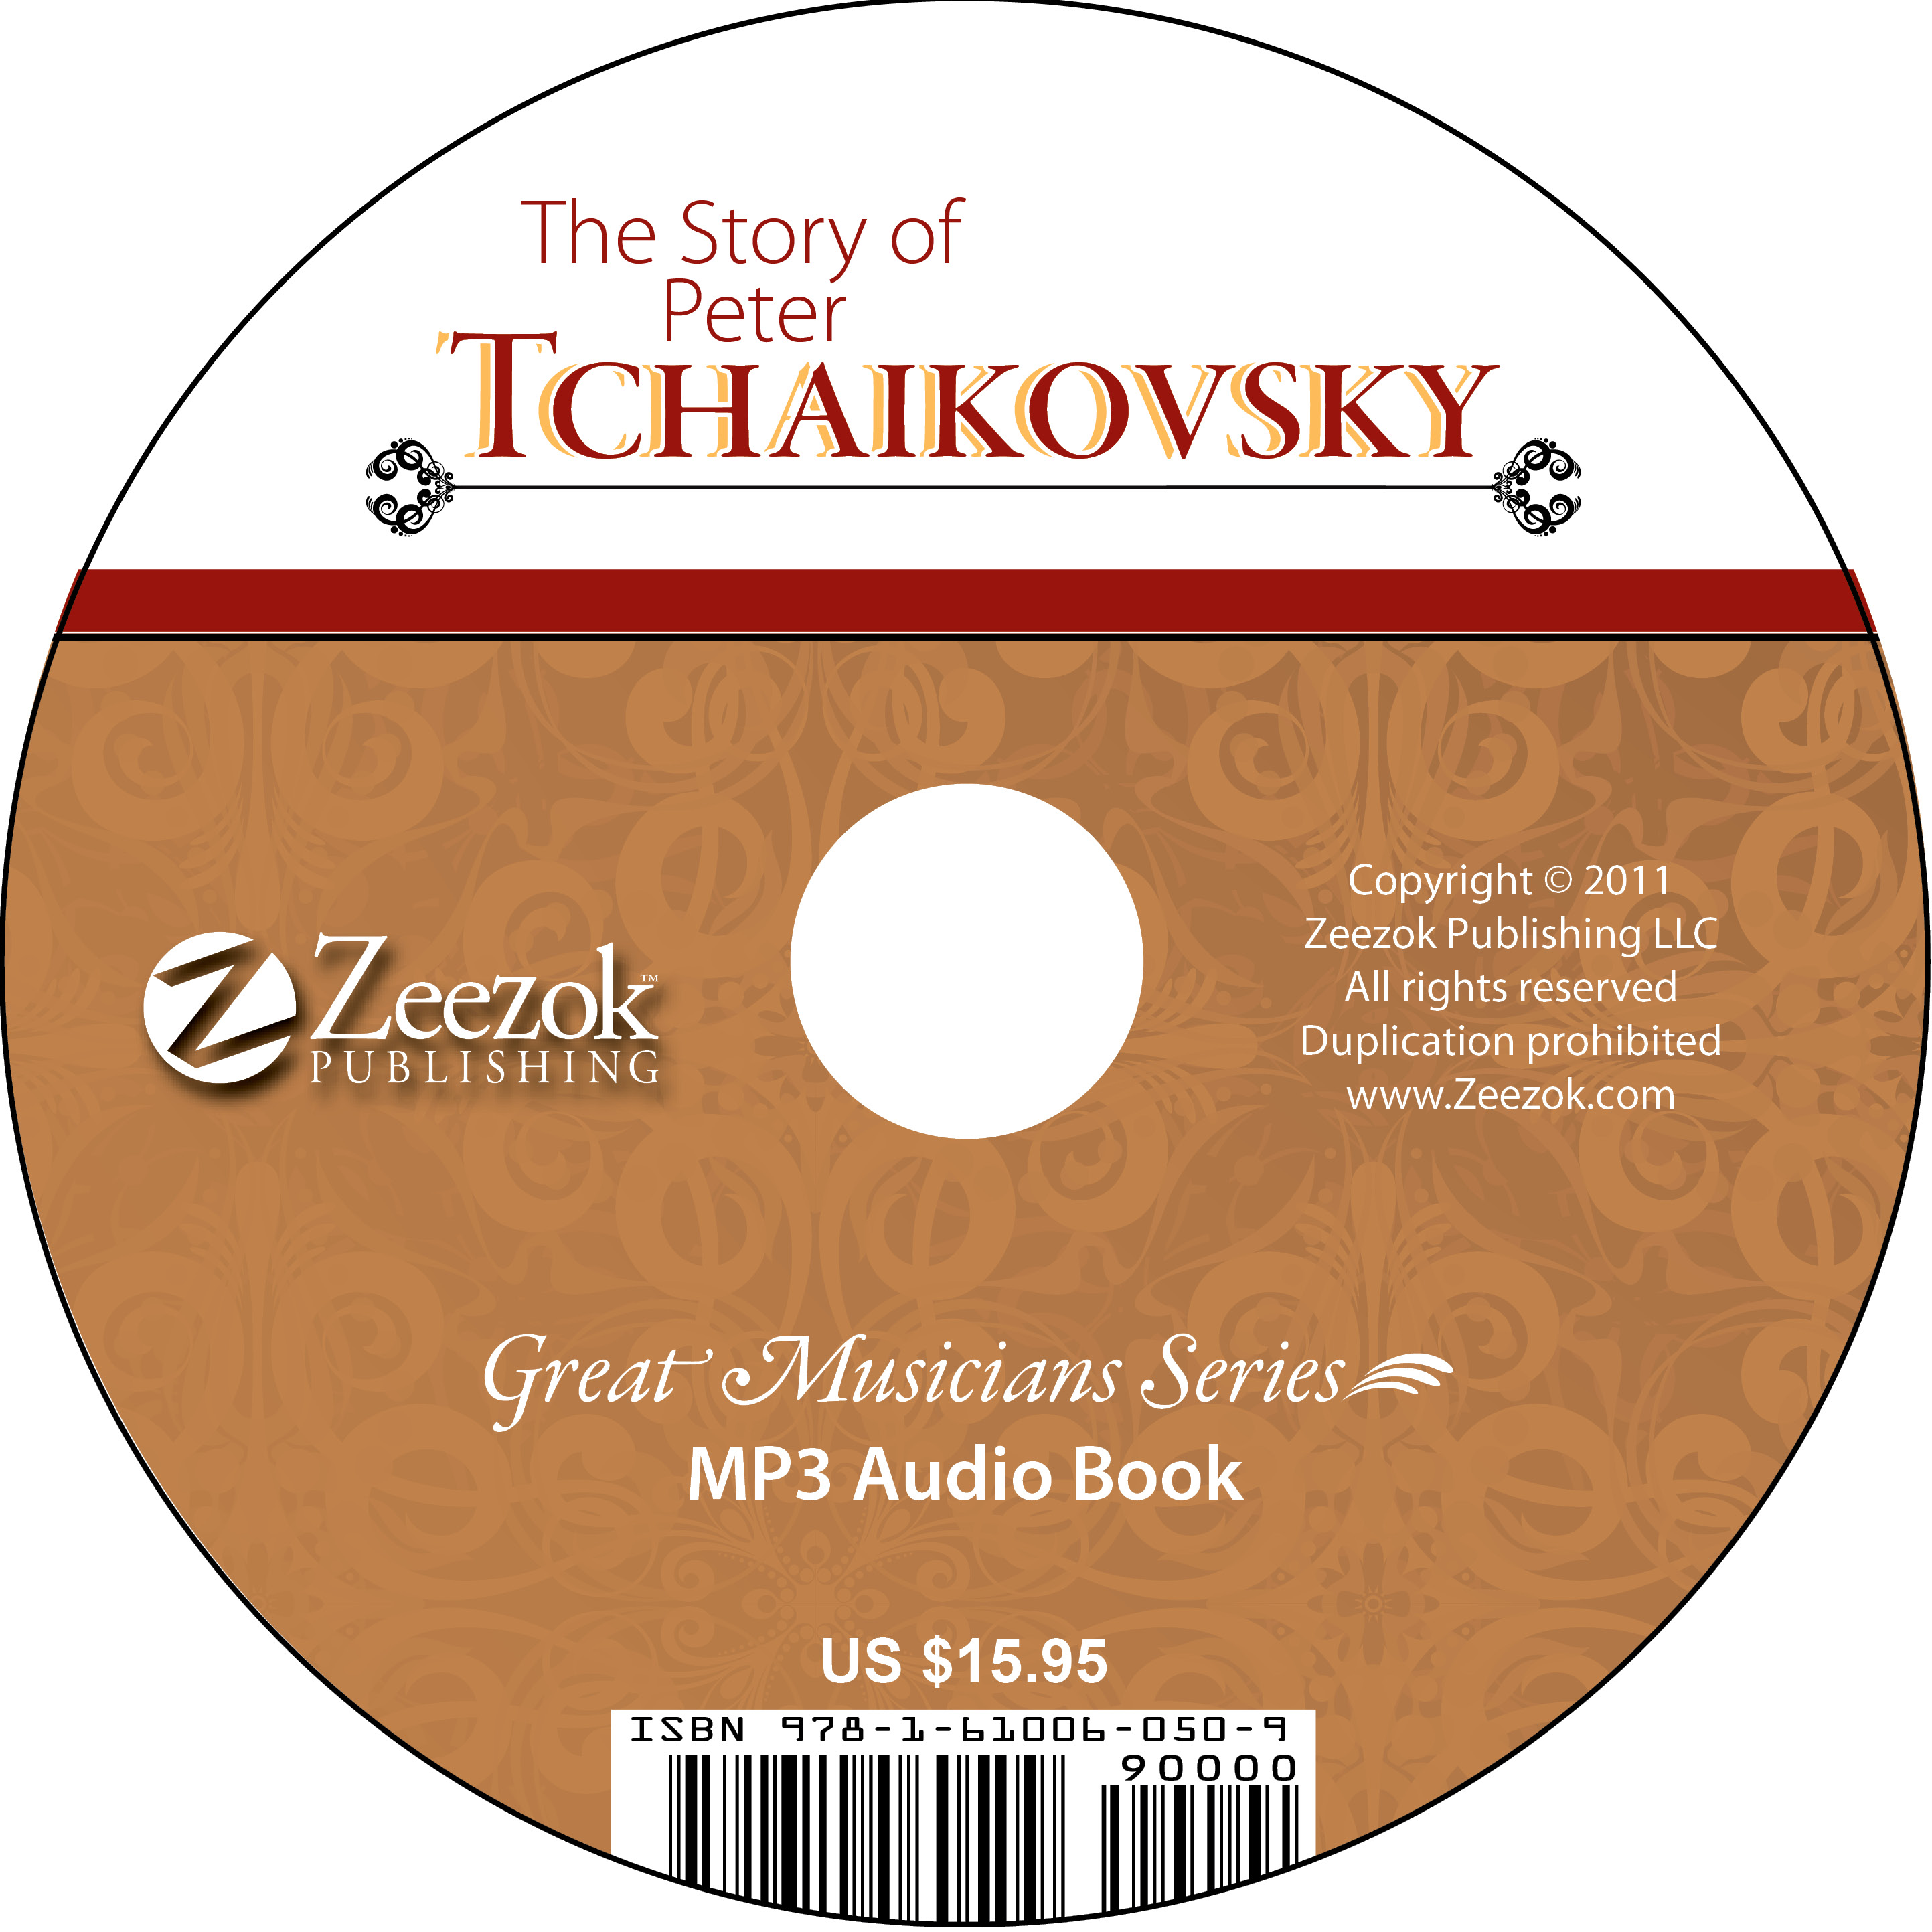 What are the different listening options for audiobooks